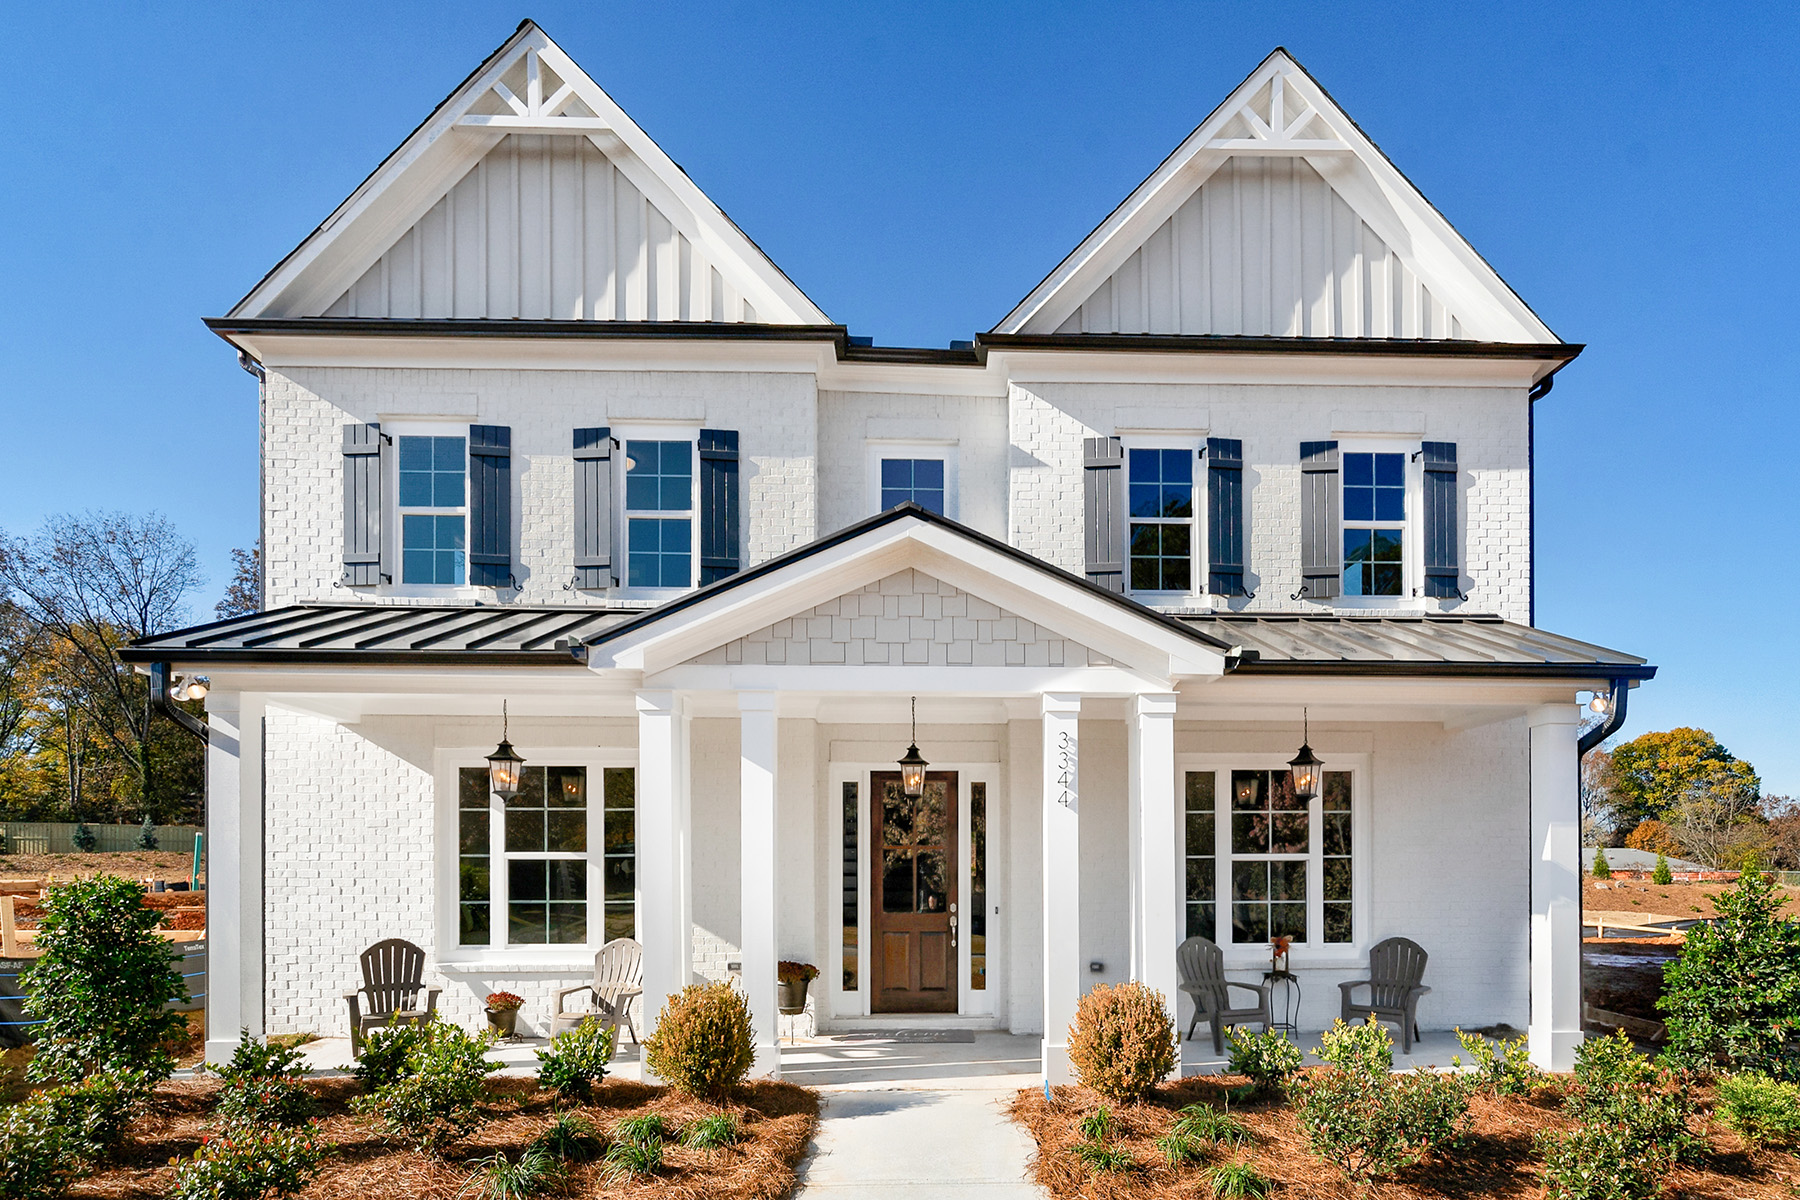 Single Family Homes for Sale at New Construction Home in Smyrna with Master Upstairs 3348 Old Concord Road, Smyrna, Georgia 30082 United States